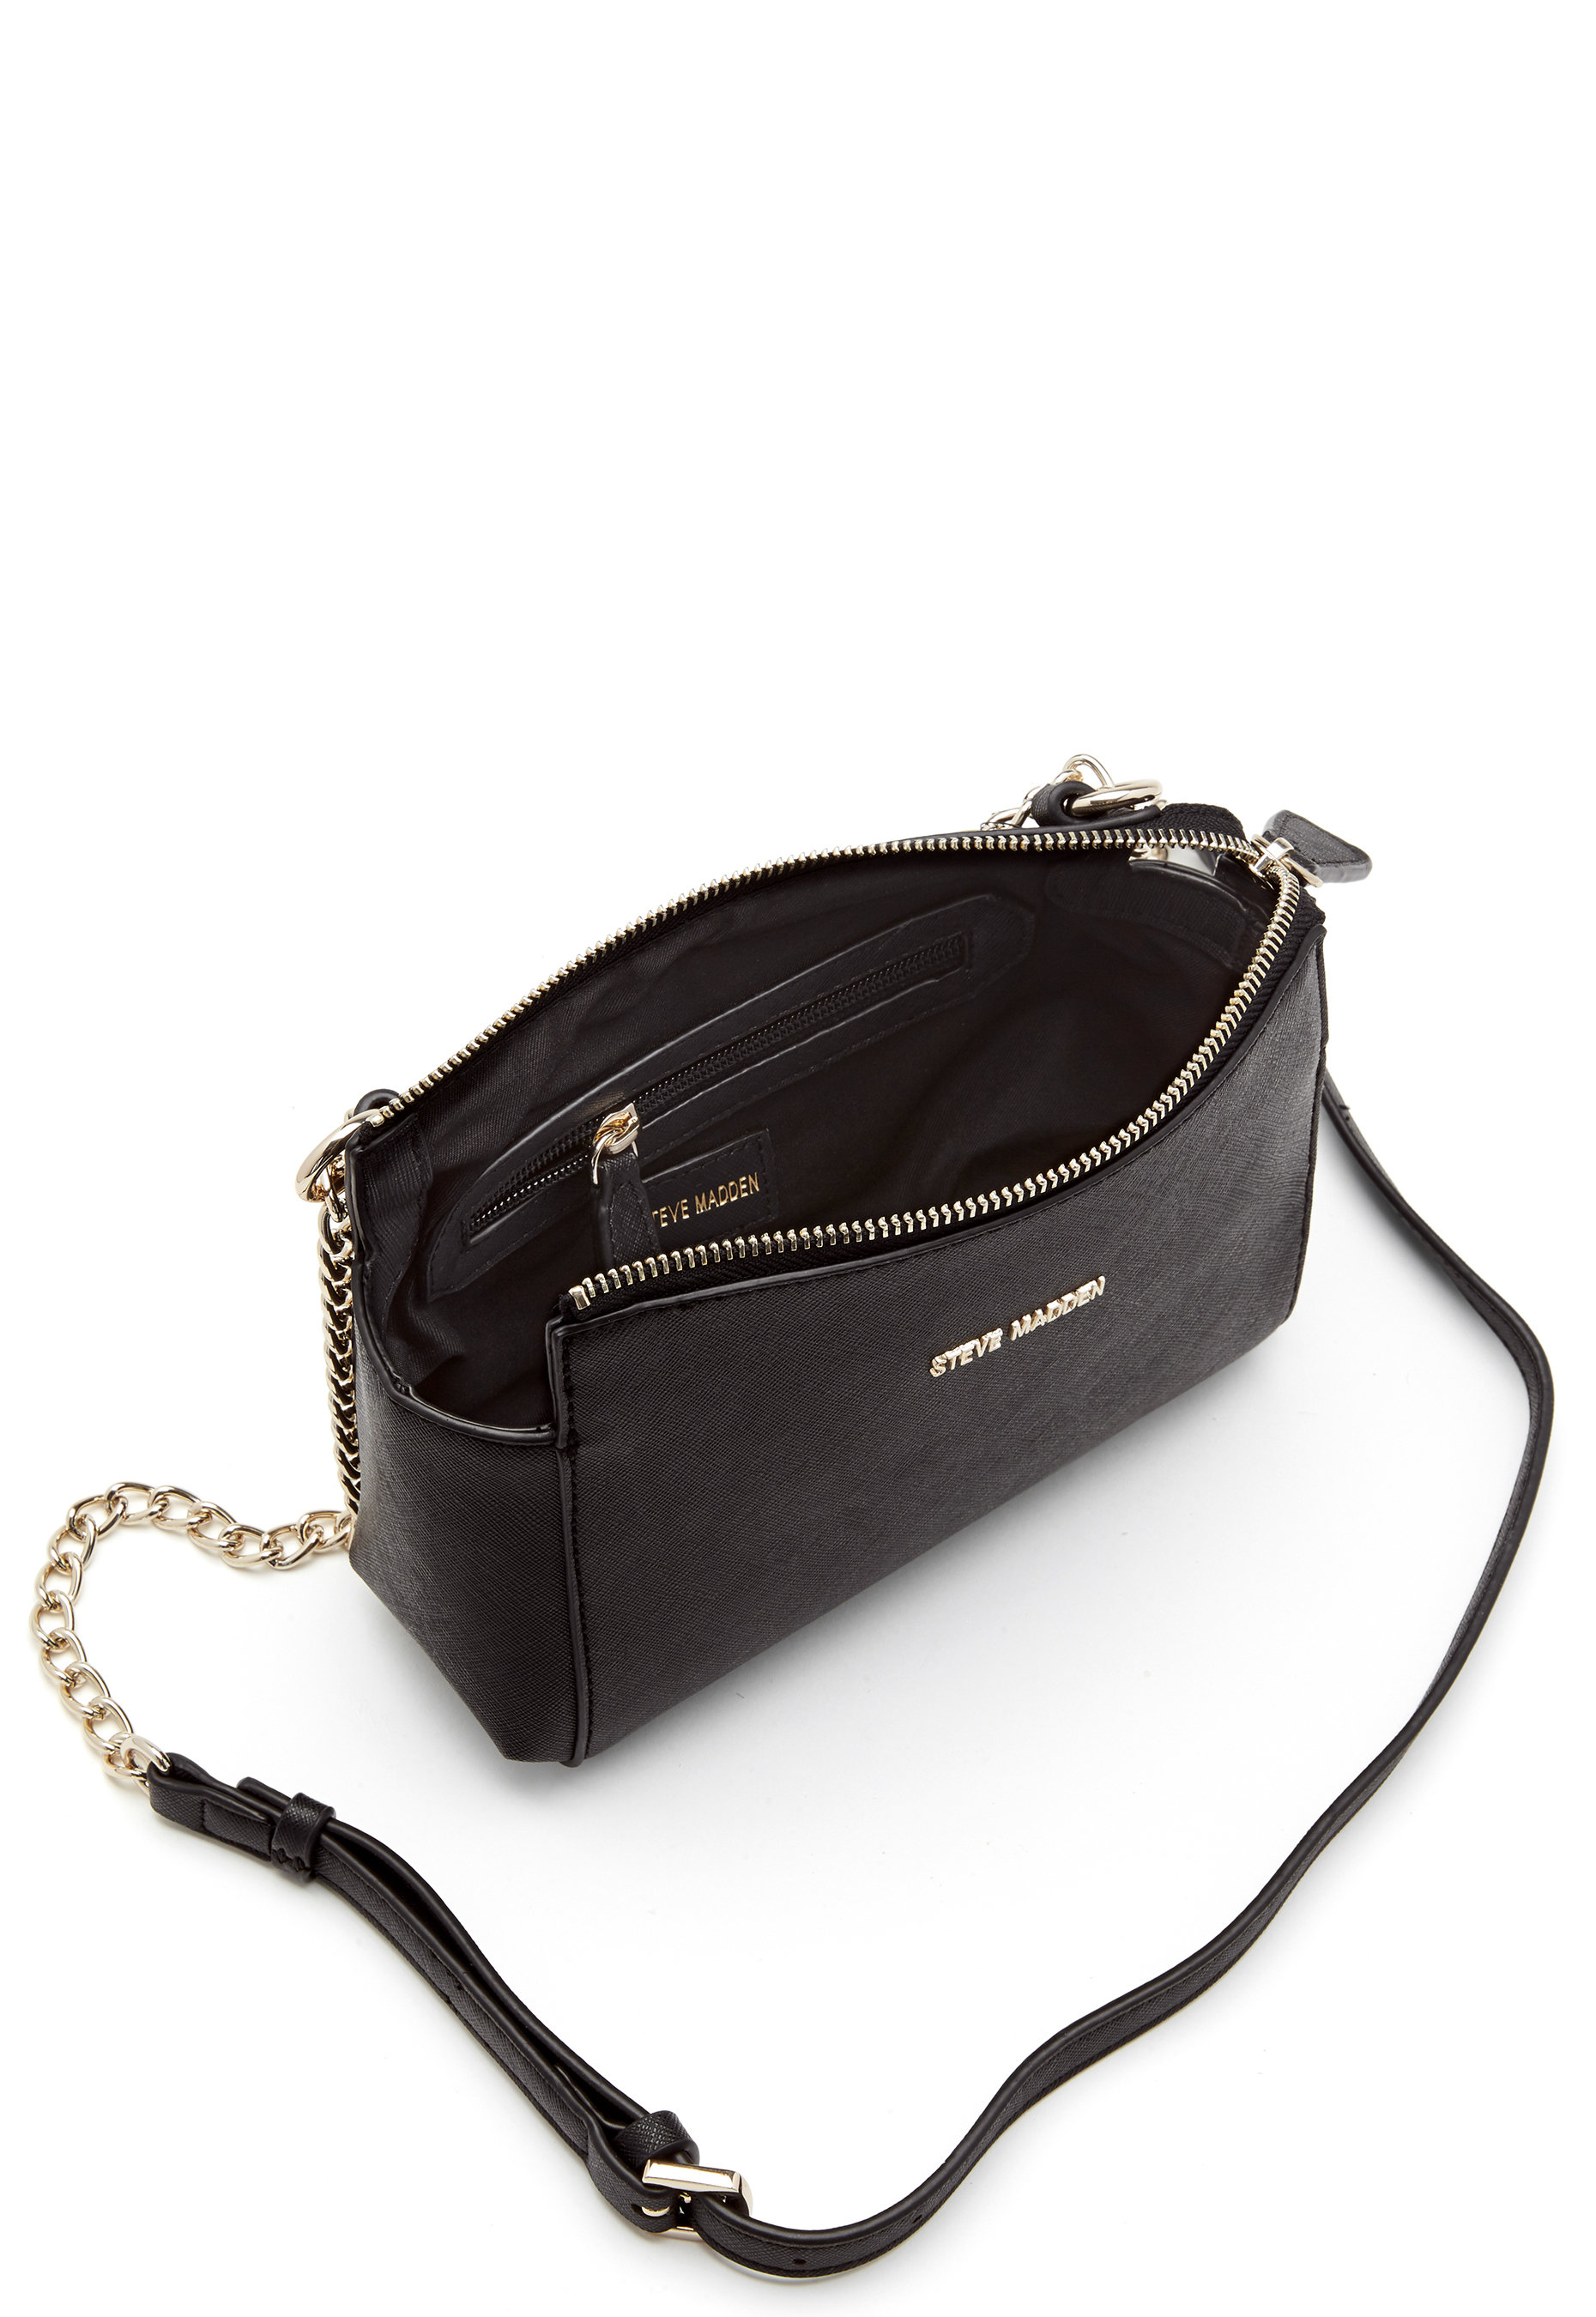 cbc6c8b4441 Steve Madden Bvailc Crossbody Bag Black - Bubbleroom